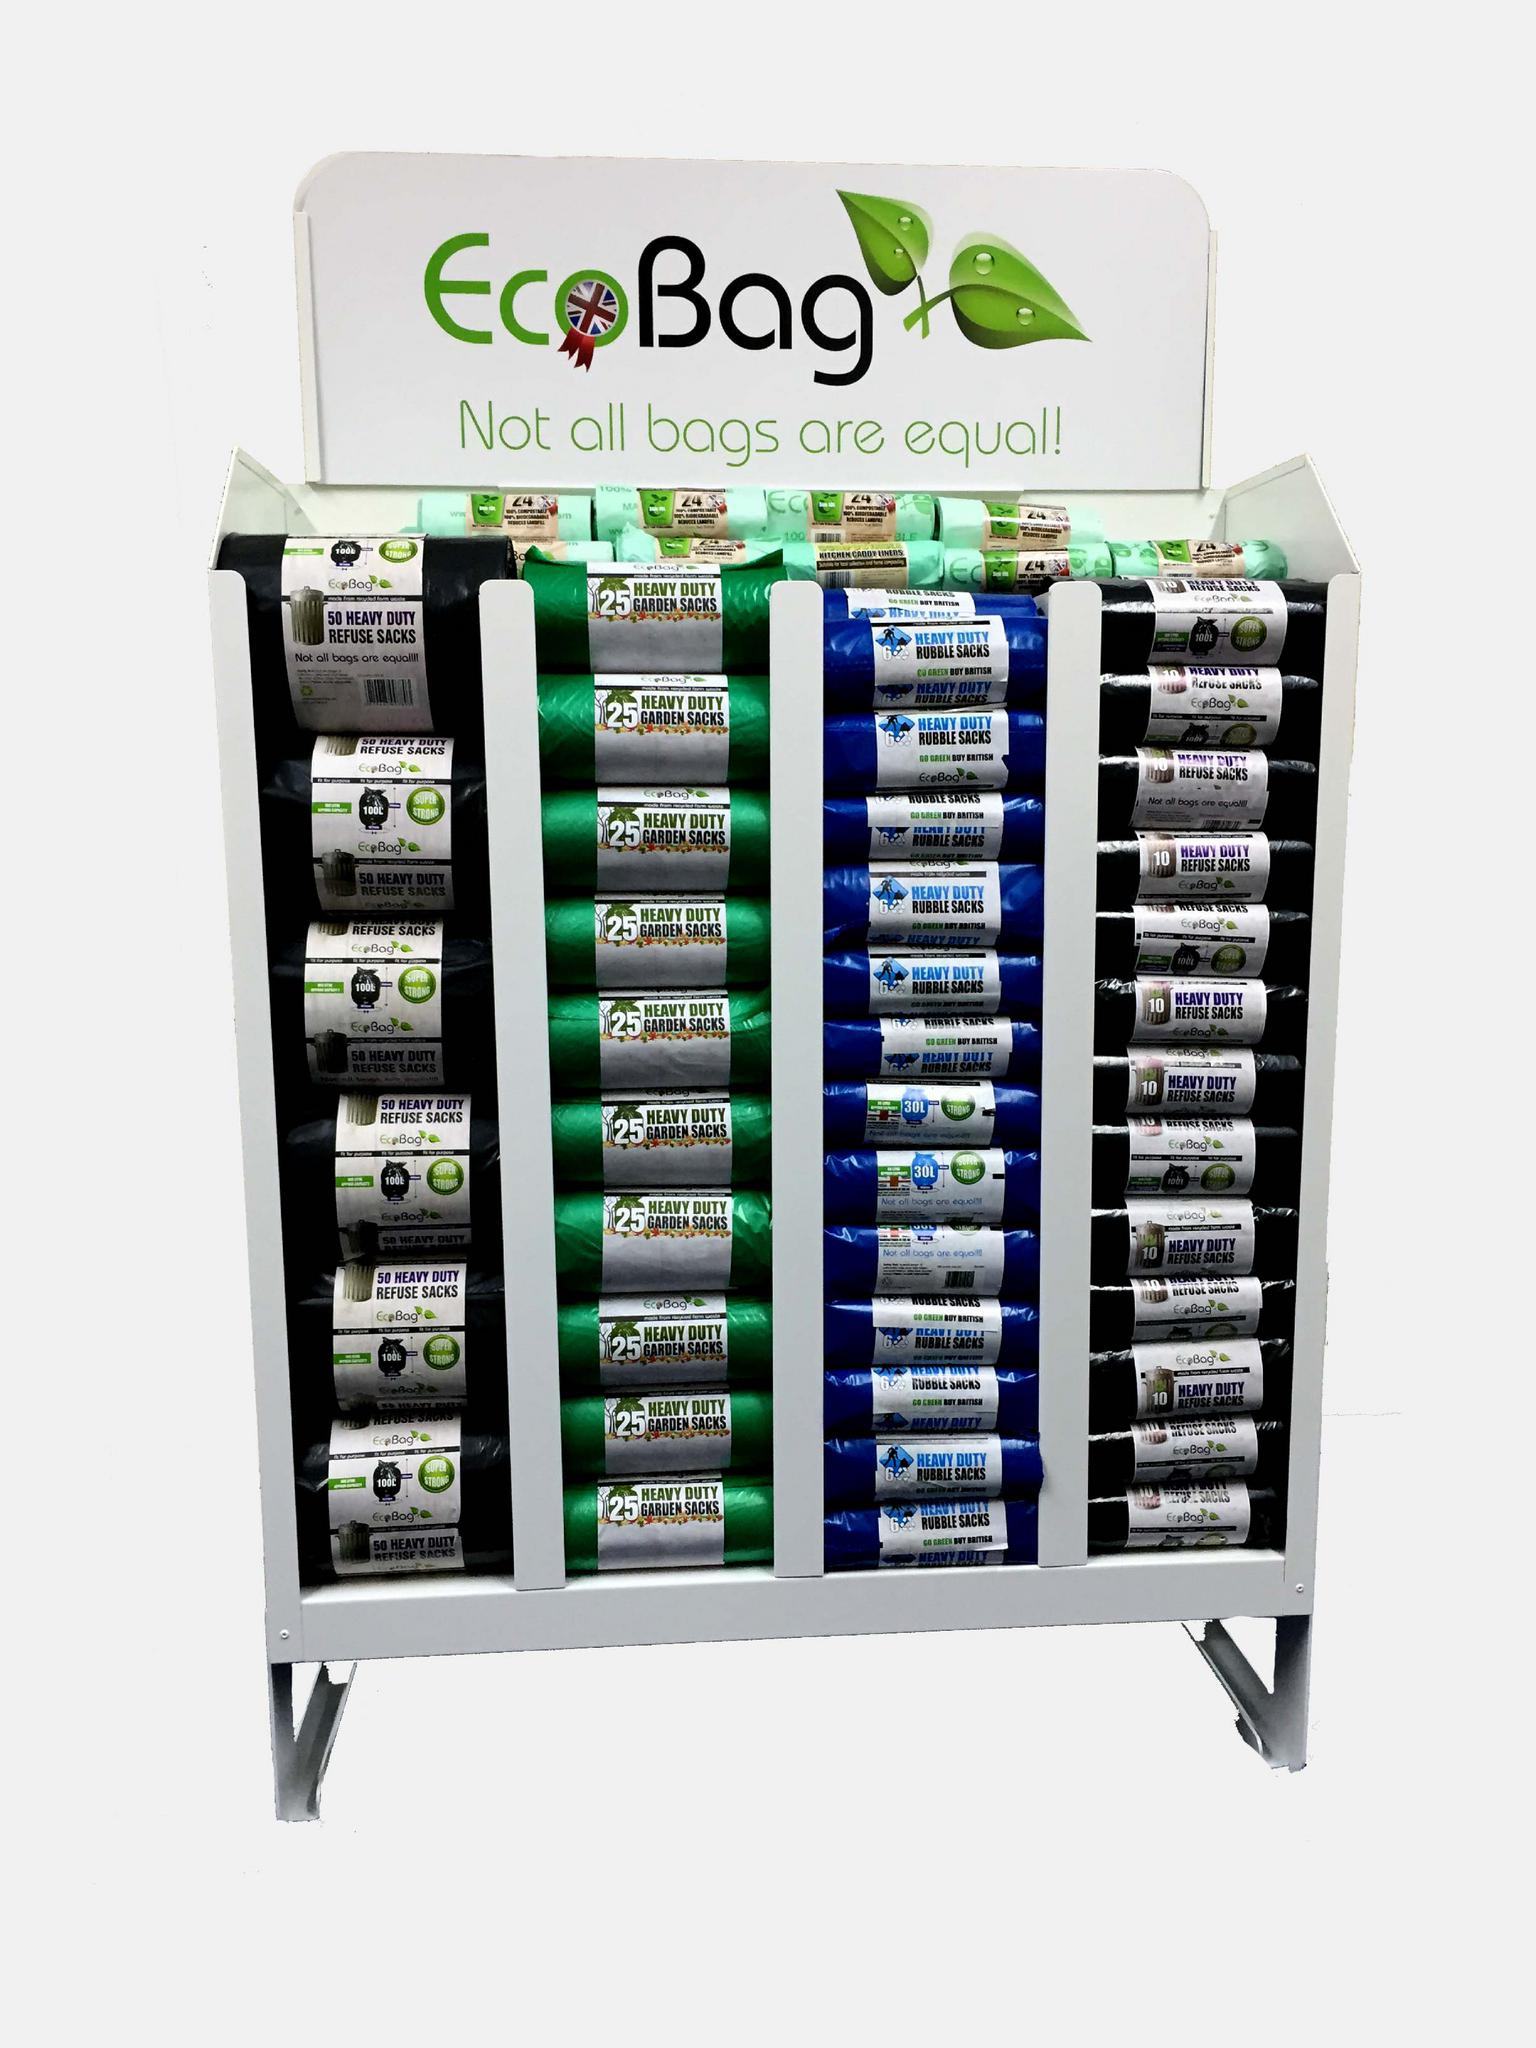 Eco Bag UK Ltd